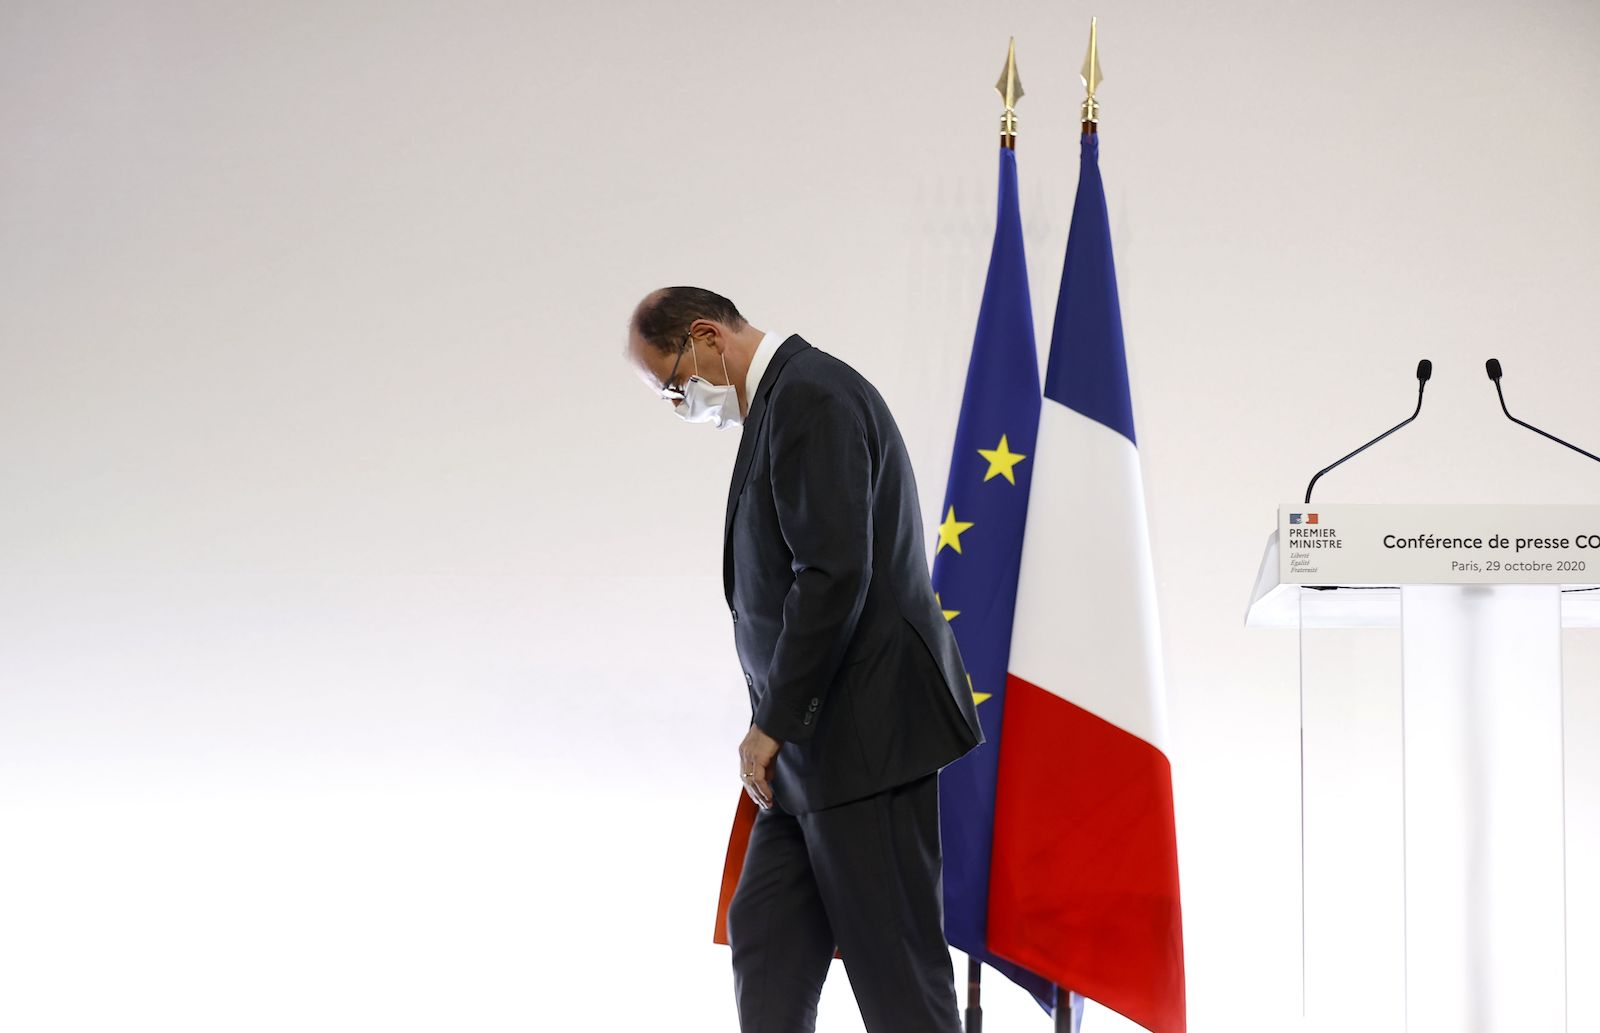 French Prime Minister Jean Castex after a press conference on coronavirus lockdown measures, Paris, 29 October 2020 (AFP via Getty Images)